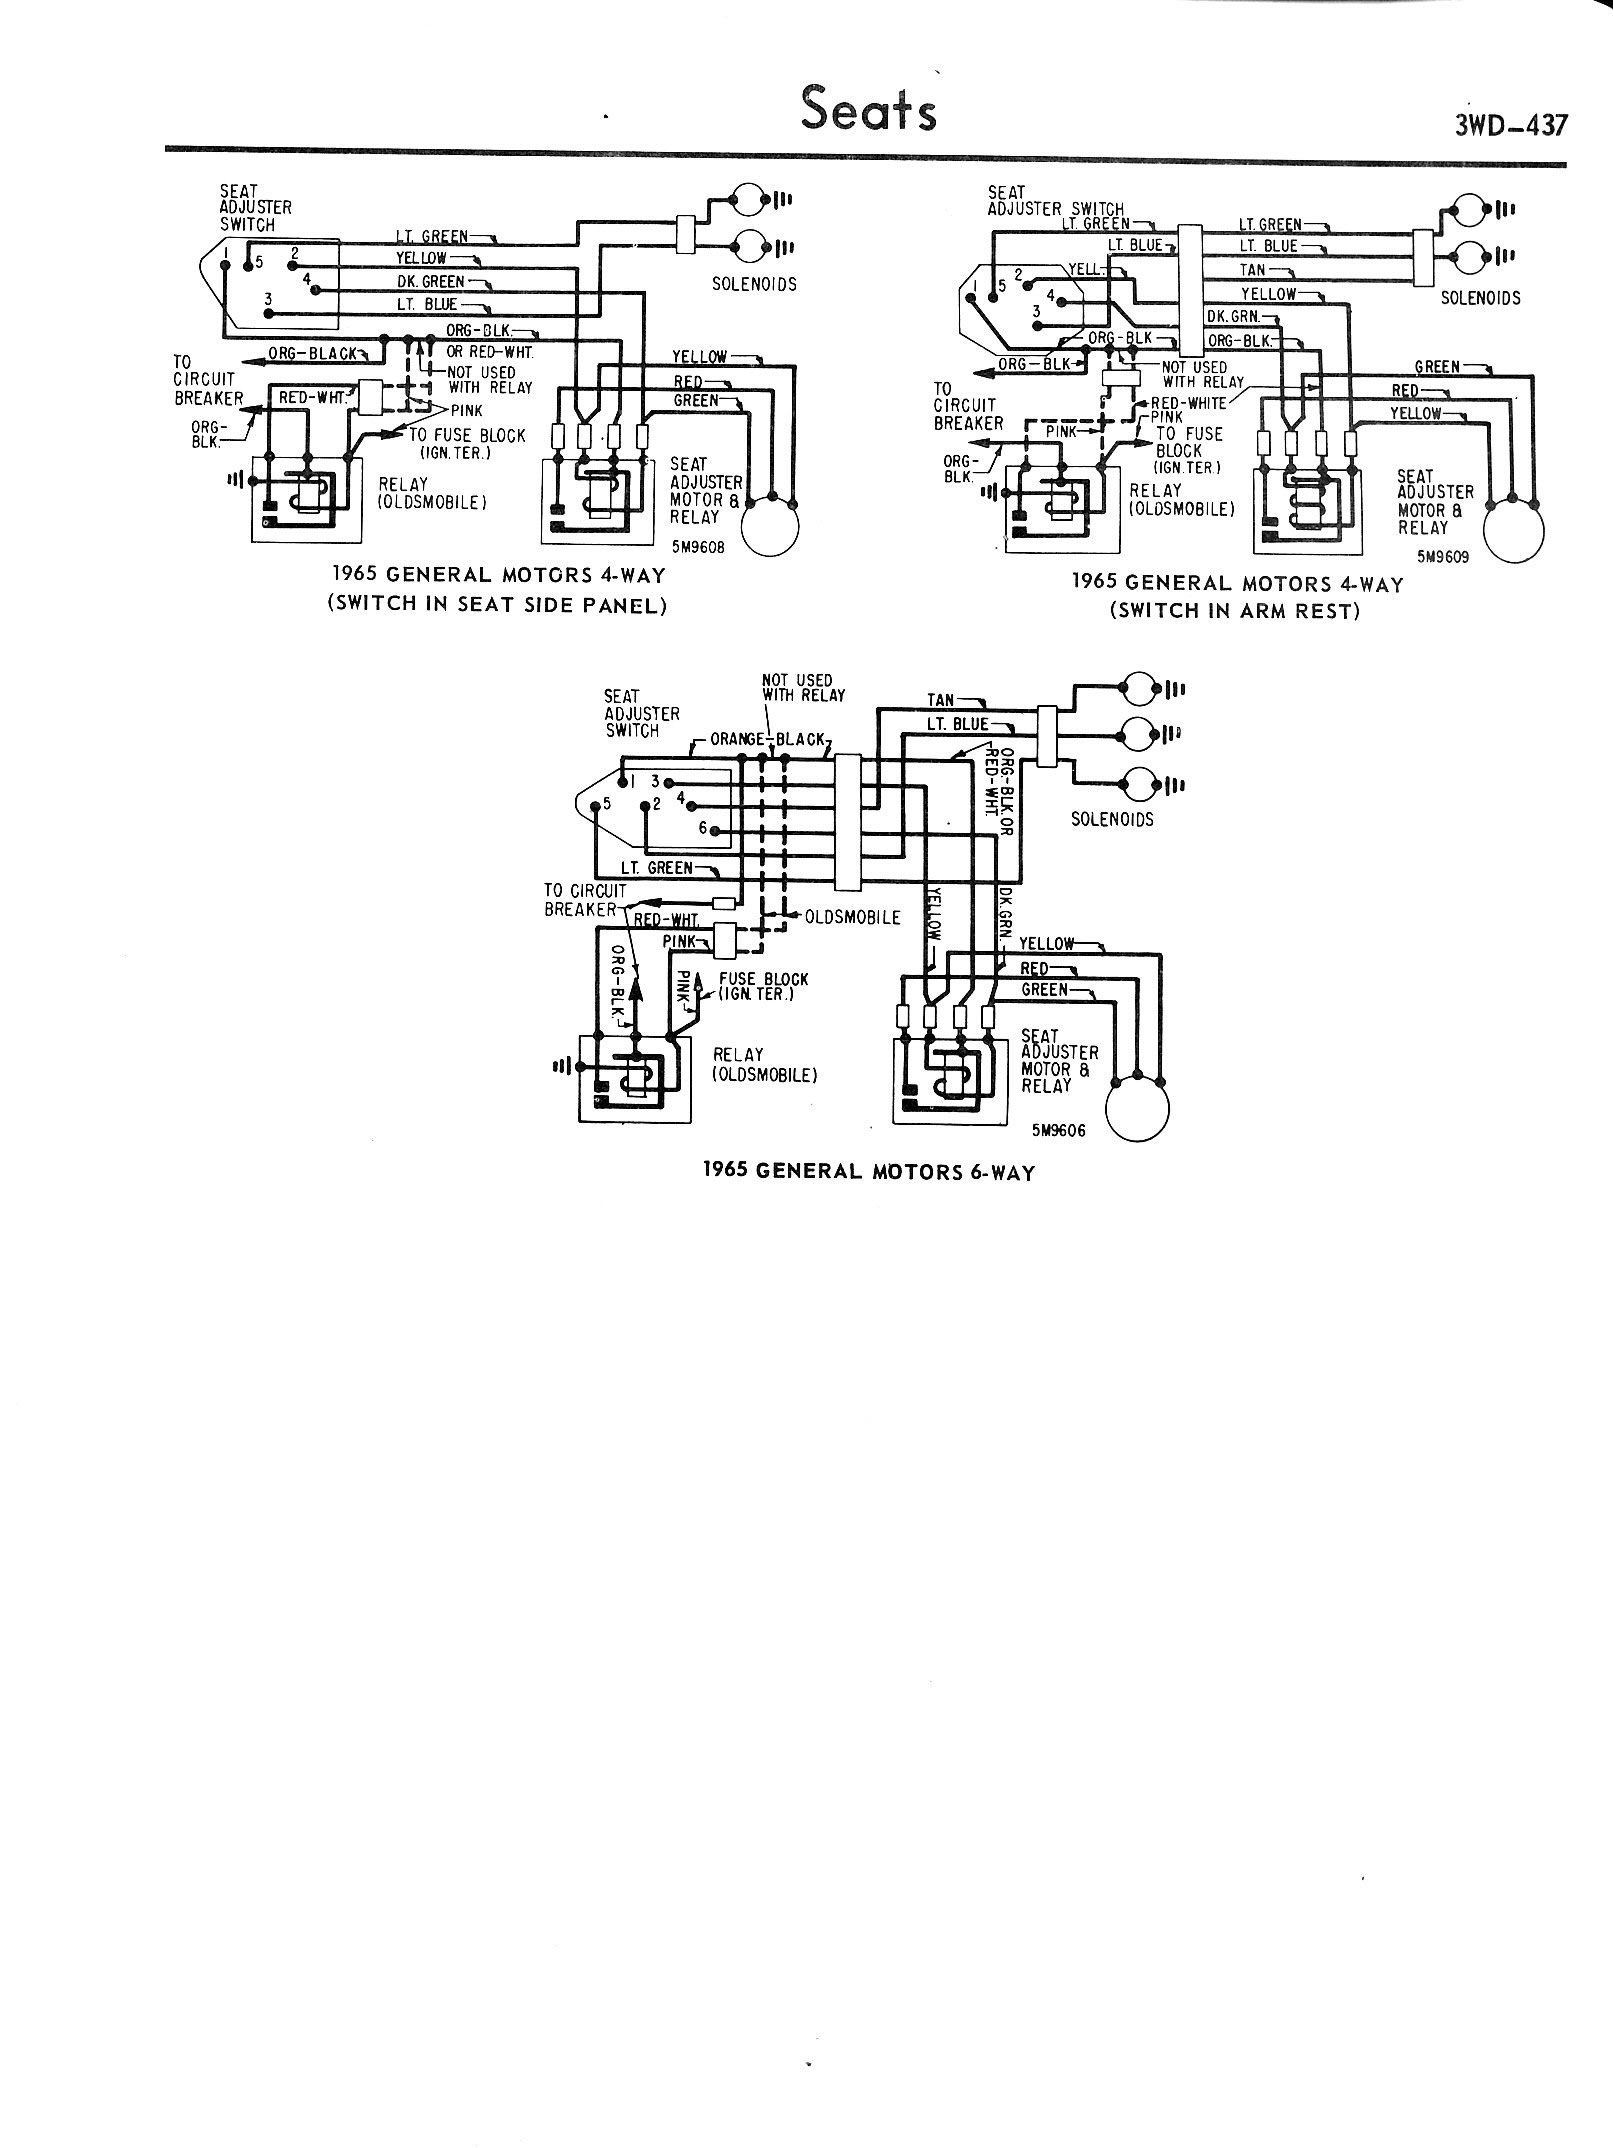 typical wiring gm